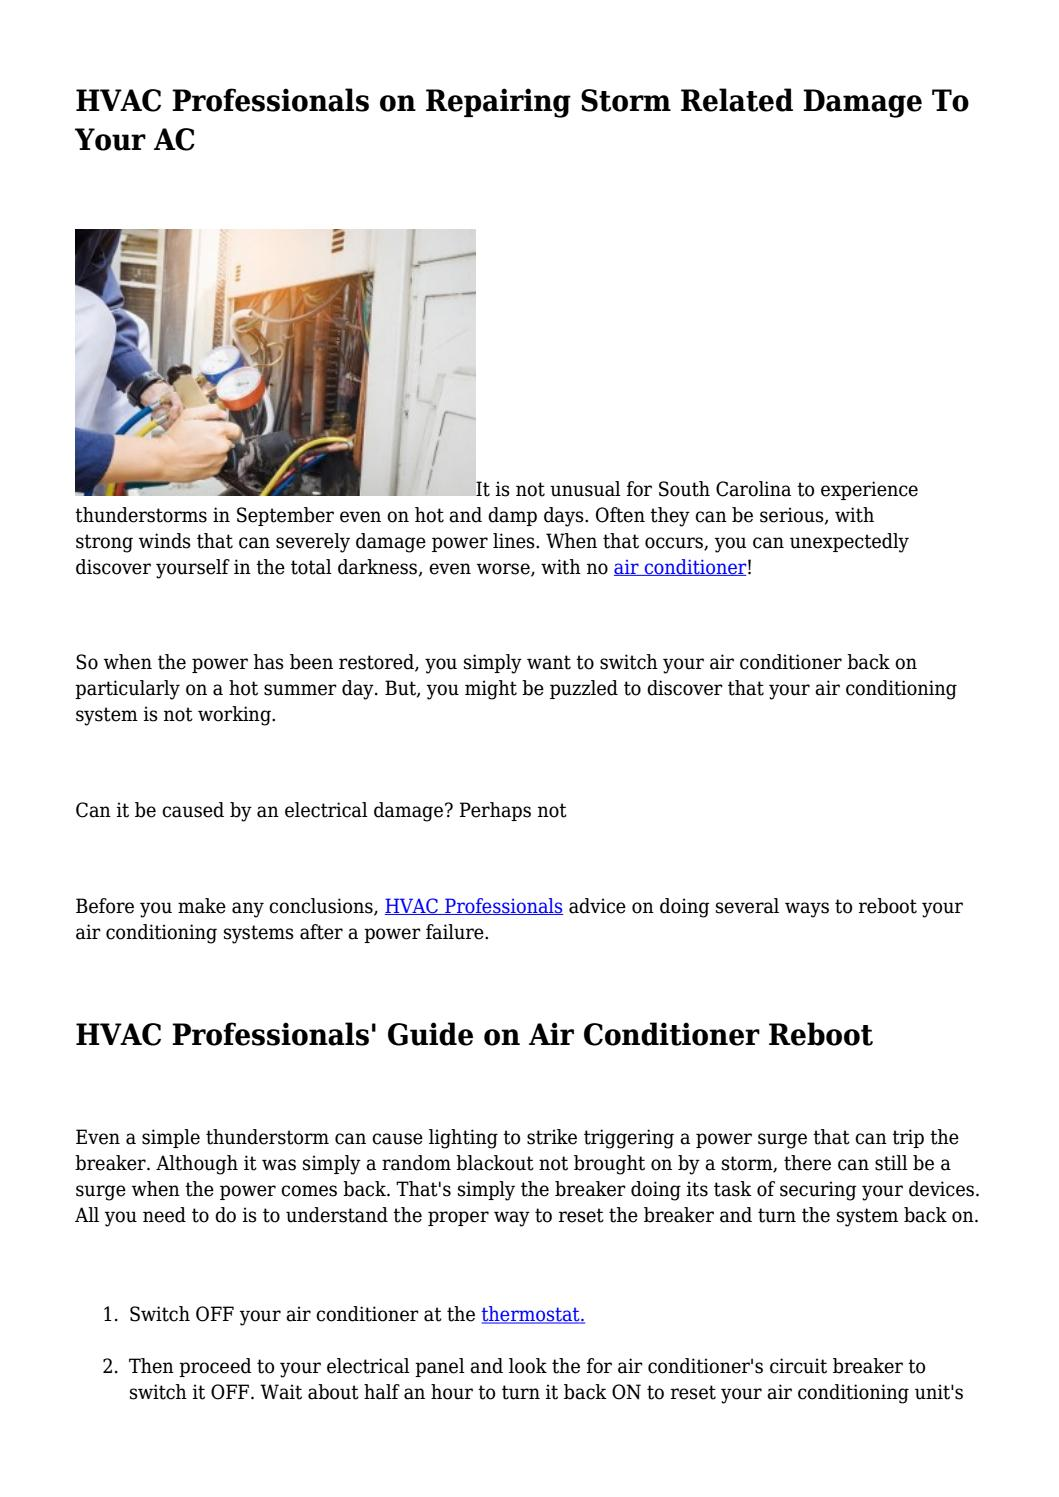 HVAC Professionals on Repairing Storm Related Damage To Your